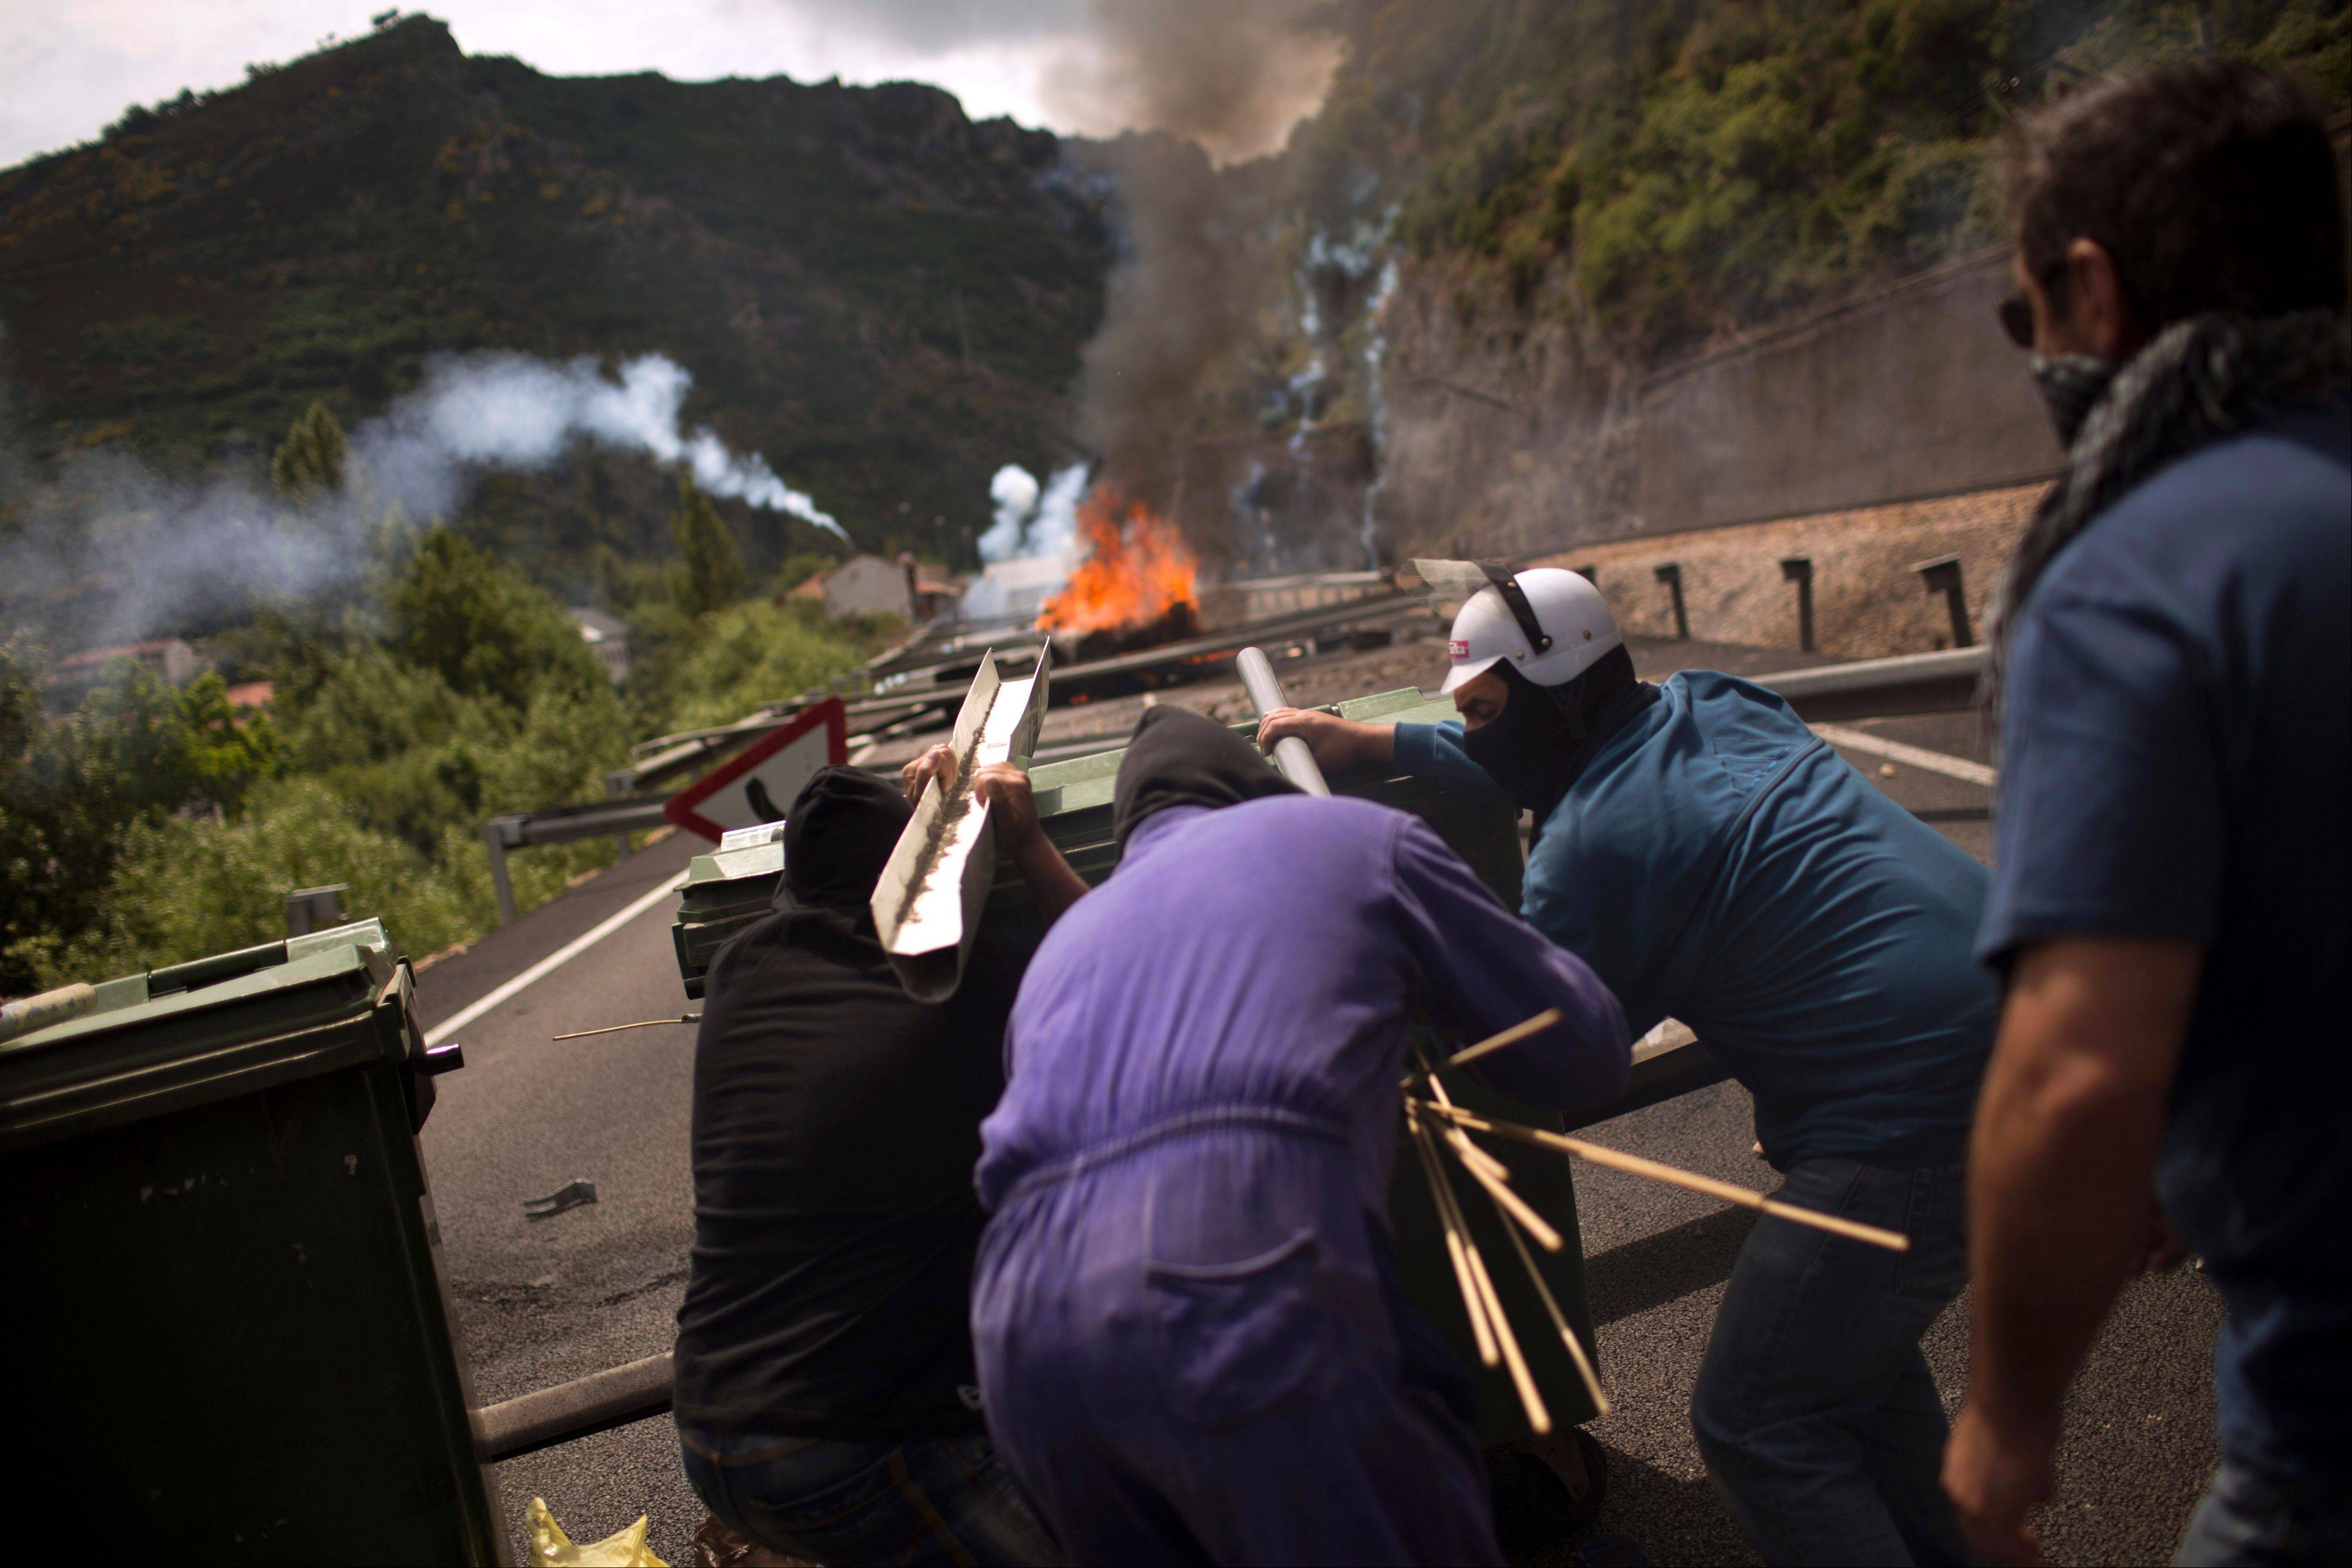 Miners fire handmade rockets at riot police as they defend their position after blocking a road Tuesday in Cinera, near Leon, Spain.